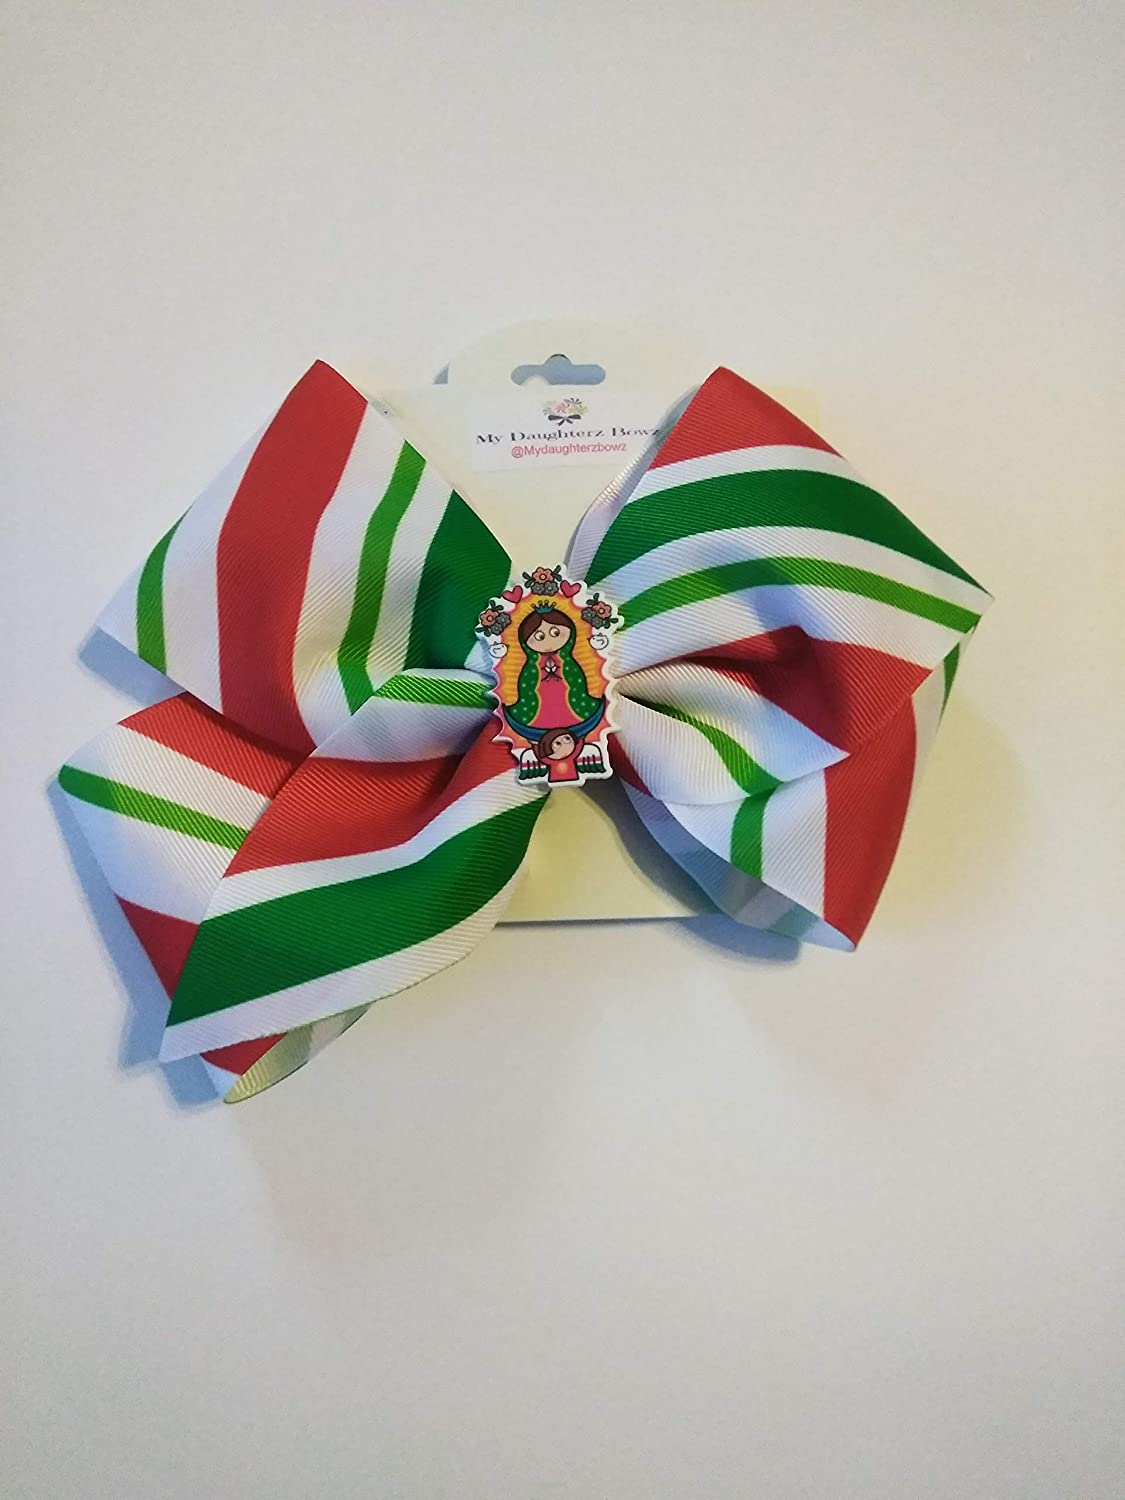 e9e07a013b5 Blessed Mary hair bow, Our Lady of Guadalupe, JoJo style hair bow, 6.5